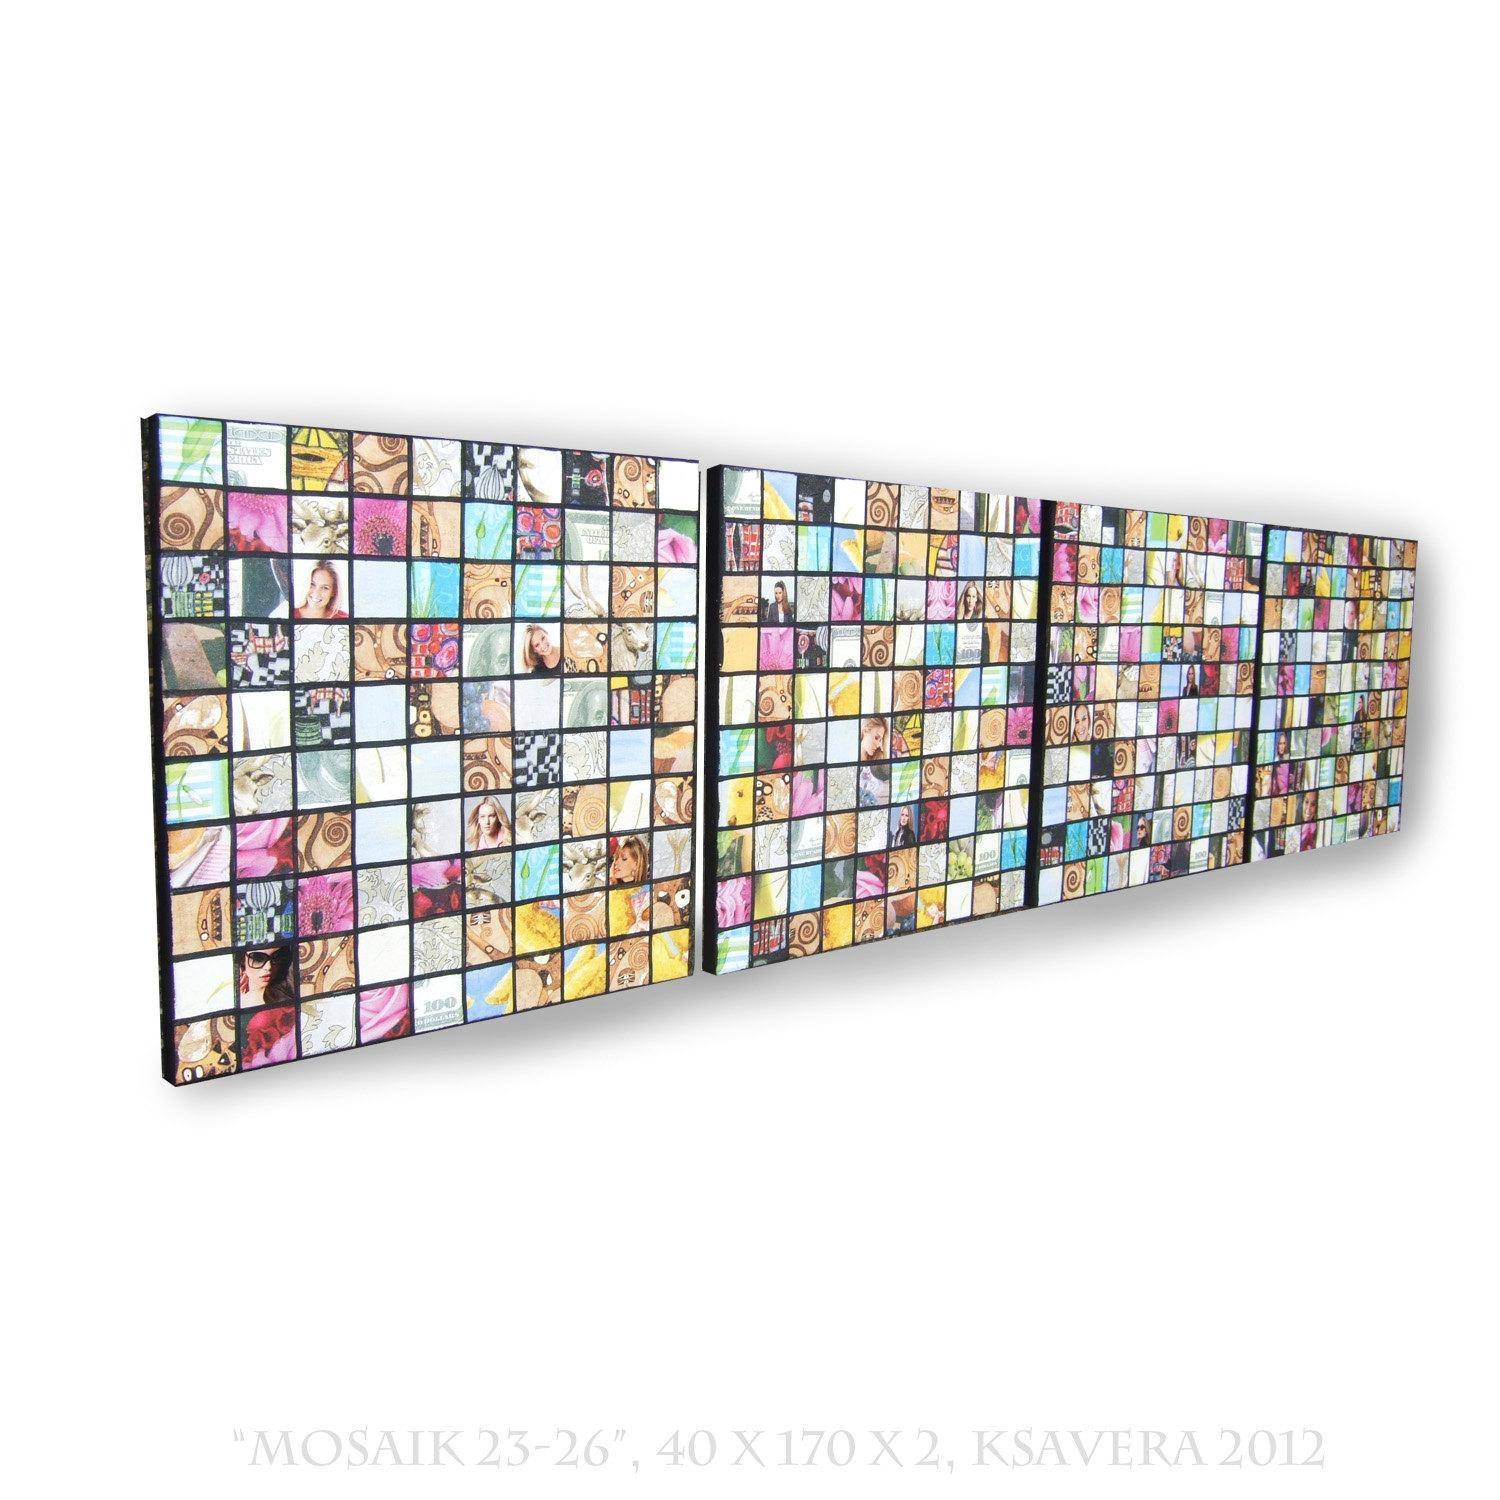 Napkins Decoupage Mosaic On Canvas Long Vertical Abstract Art pertaining to Decoupage Wall Art